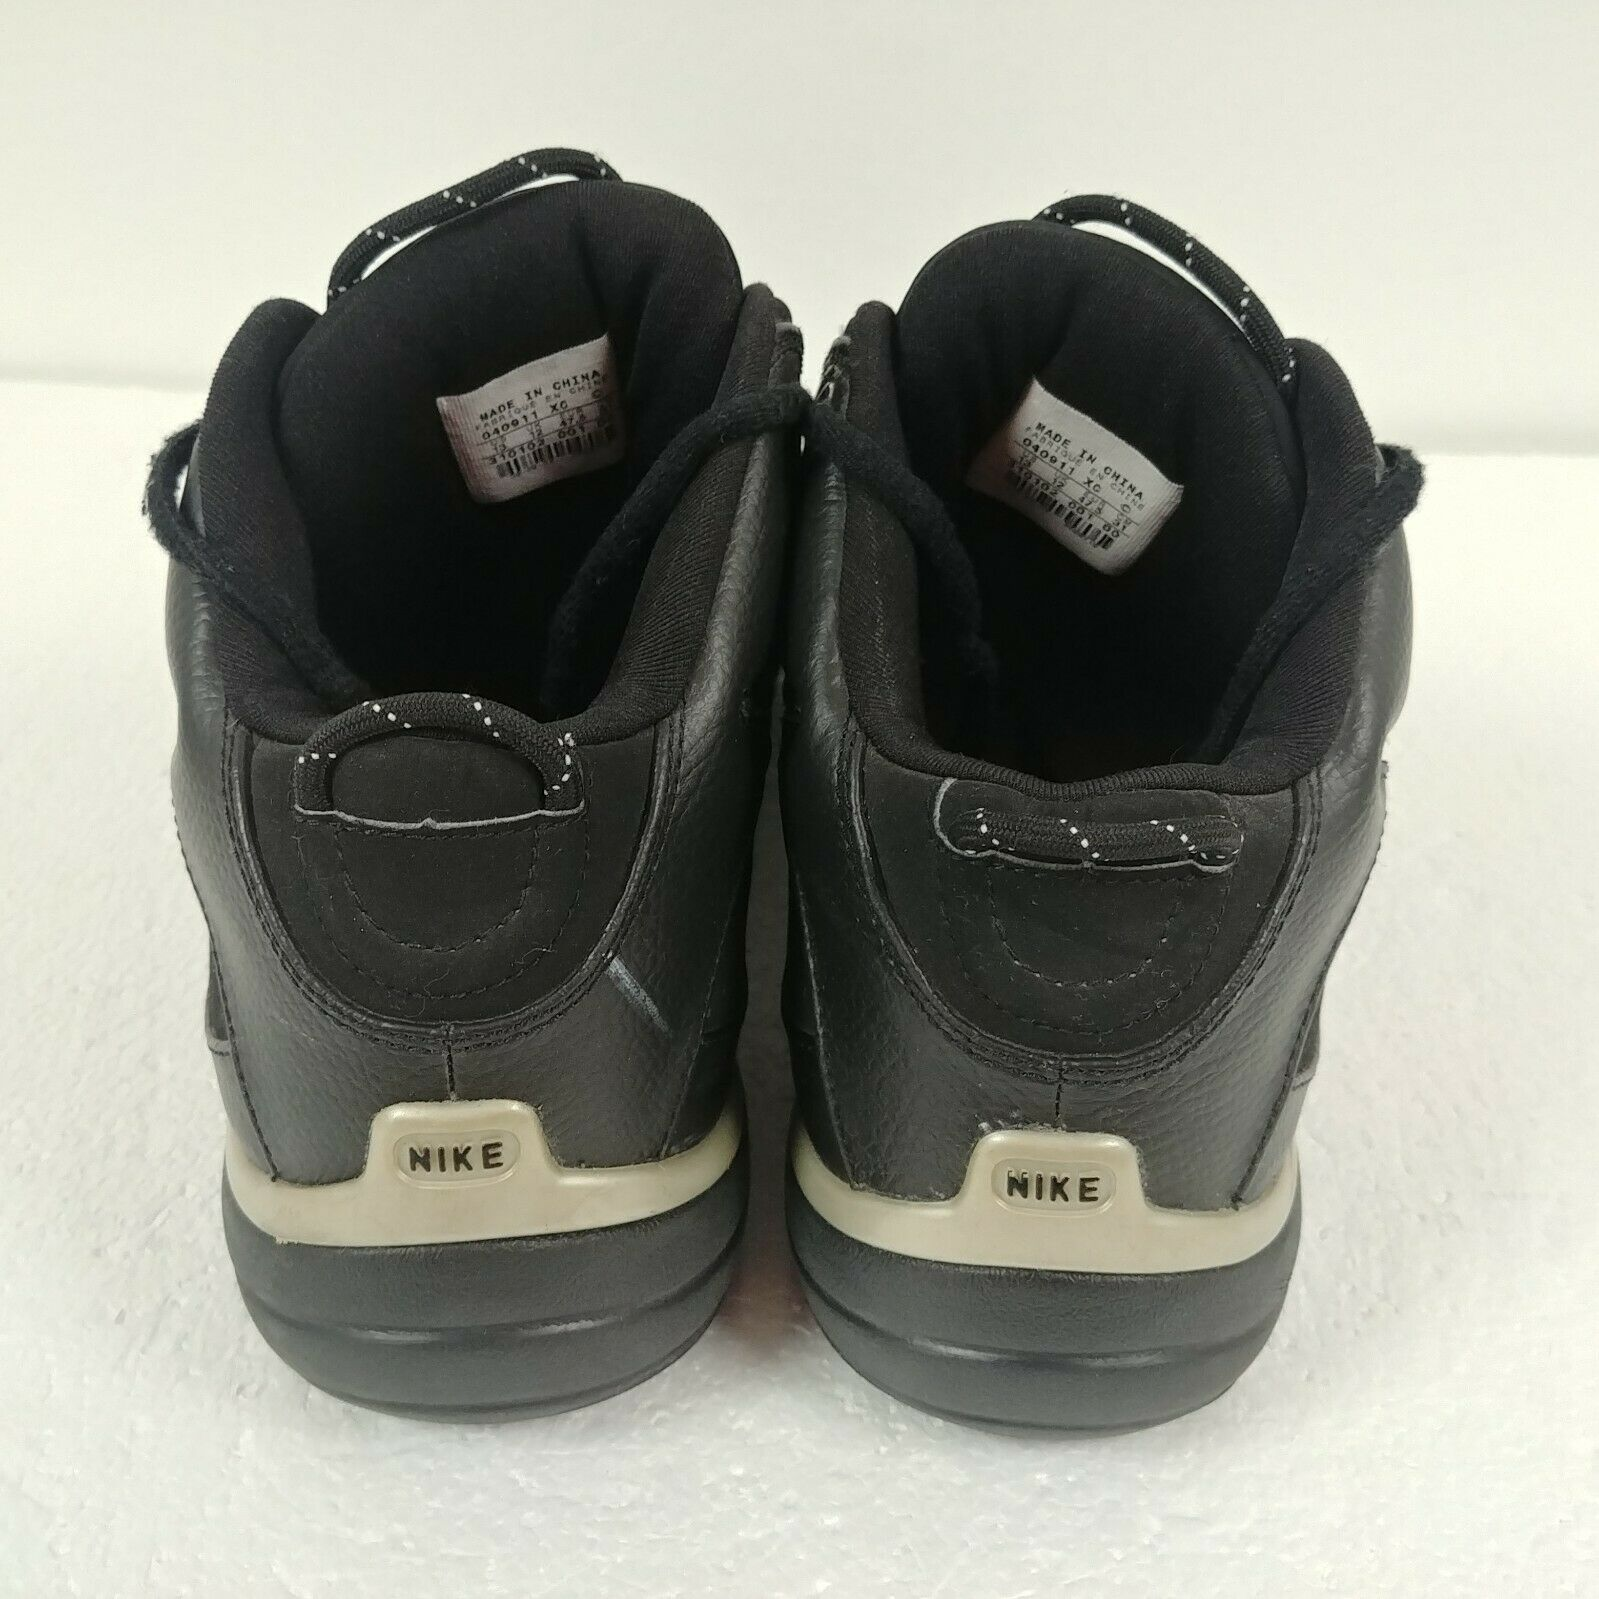 Nike Flight Fury Basketball Shoes Black 310102-001 Mens Size 13 Athletic Train image 3